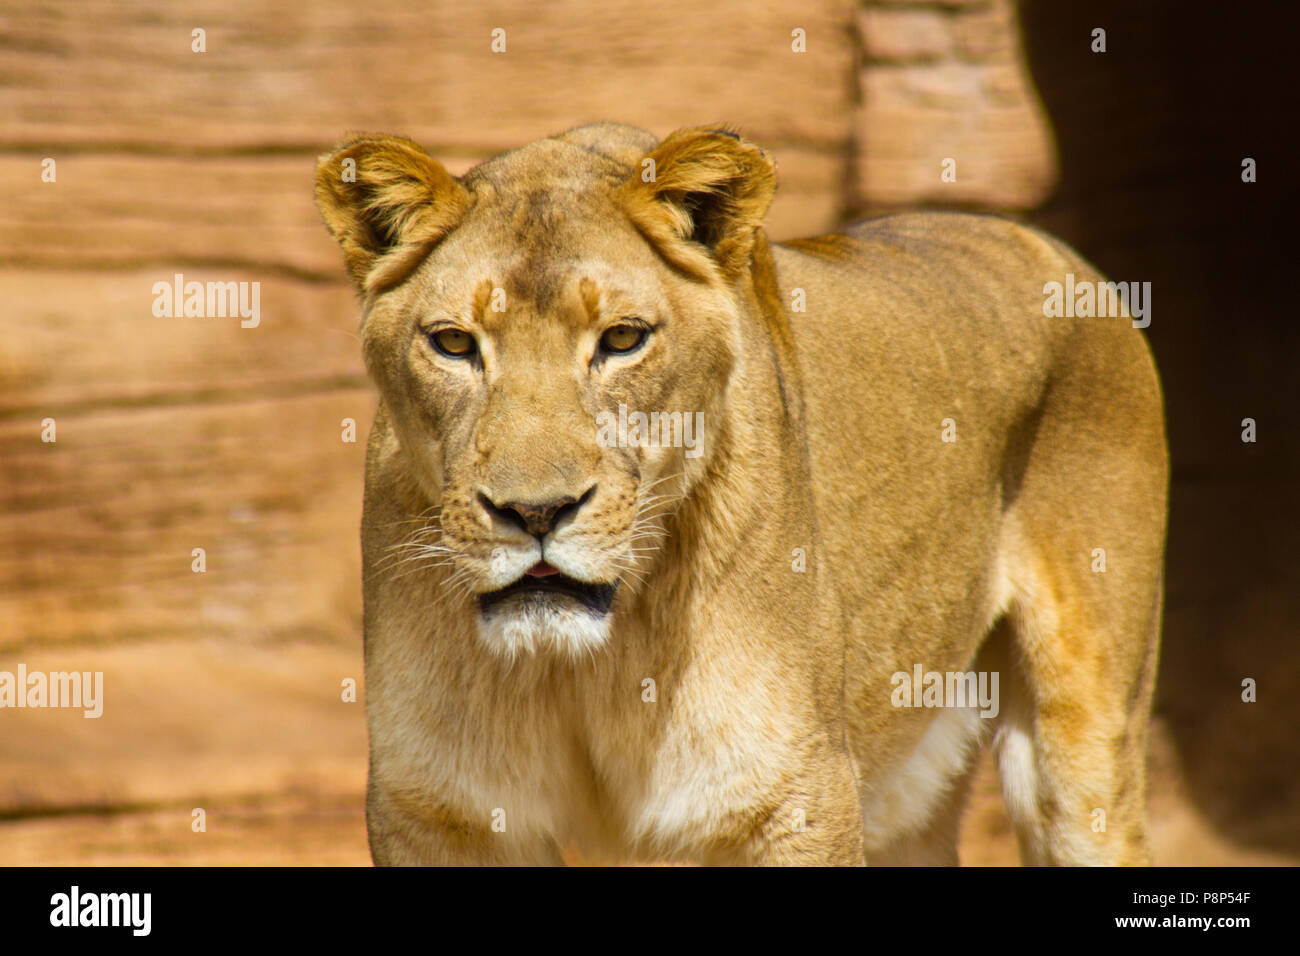 Riverbanks Zoo Stock Photos & Riverbanks Zoo Stock Images - Alamy